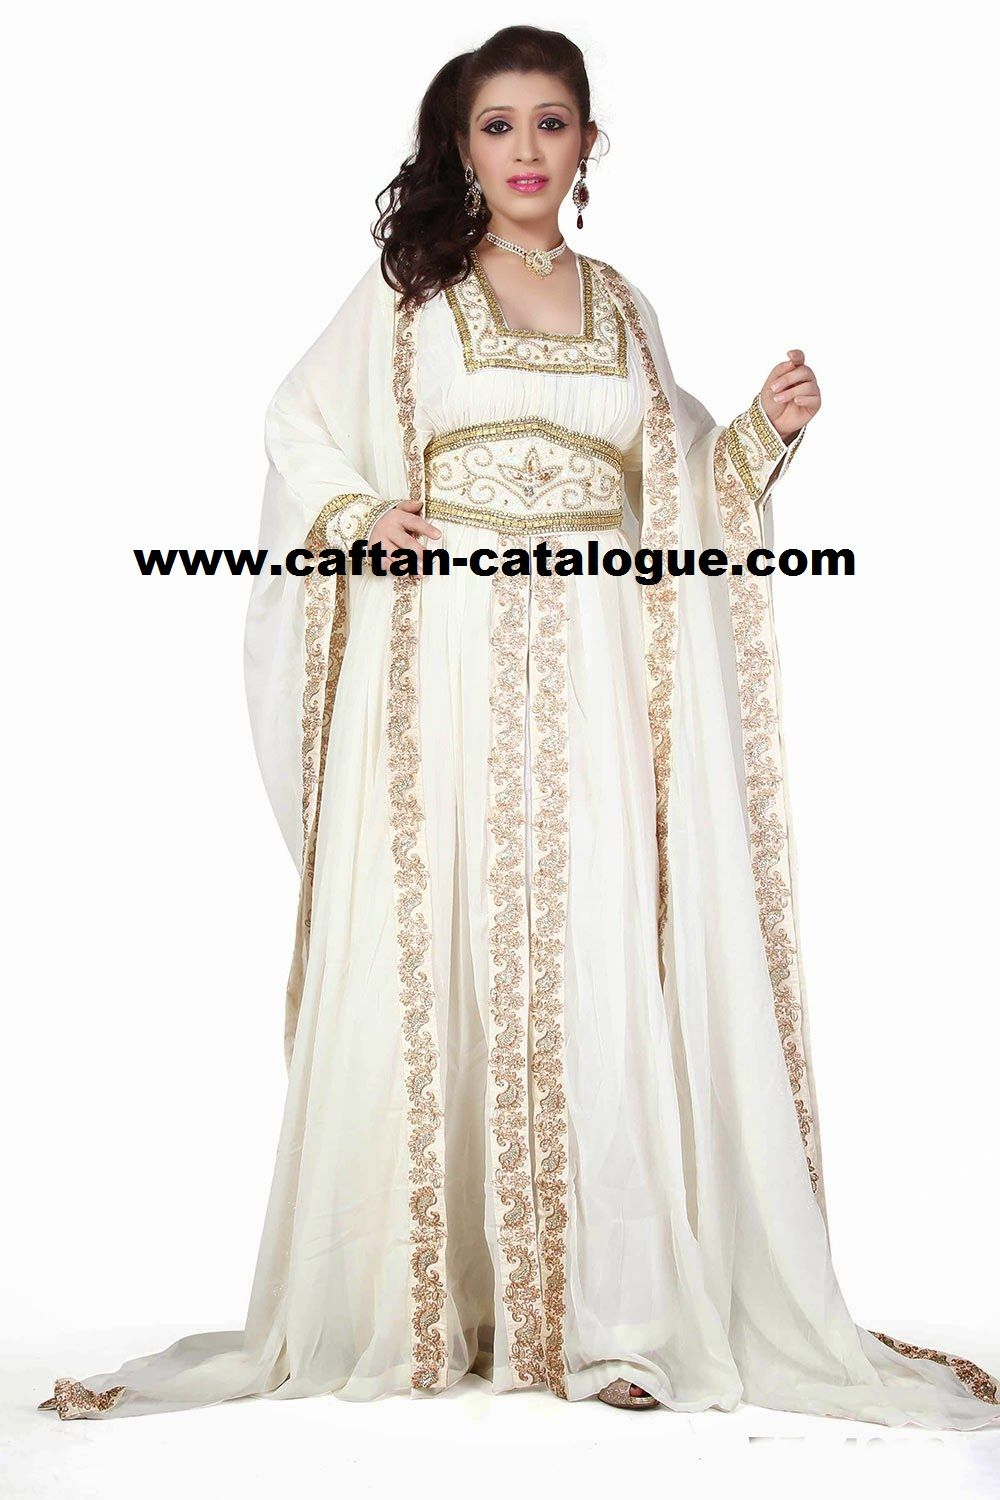 negafa caftan marocain et traiteur en belgique caftan catalogue boutique caftan pinterest. Black Bedroom Furniture Sets. Home Design Ideas